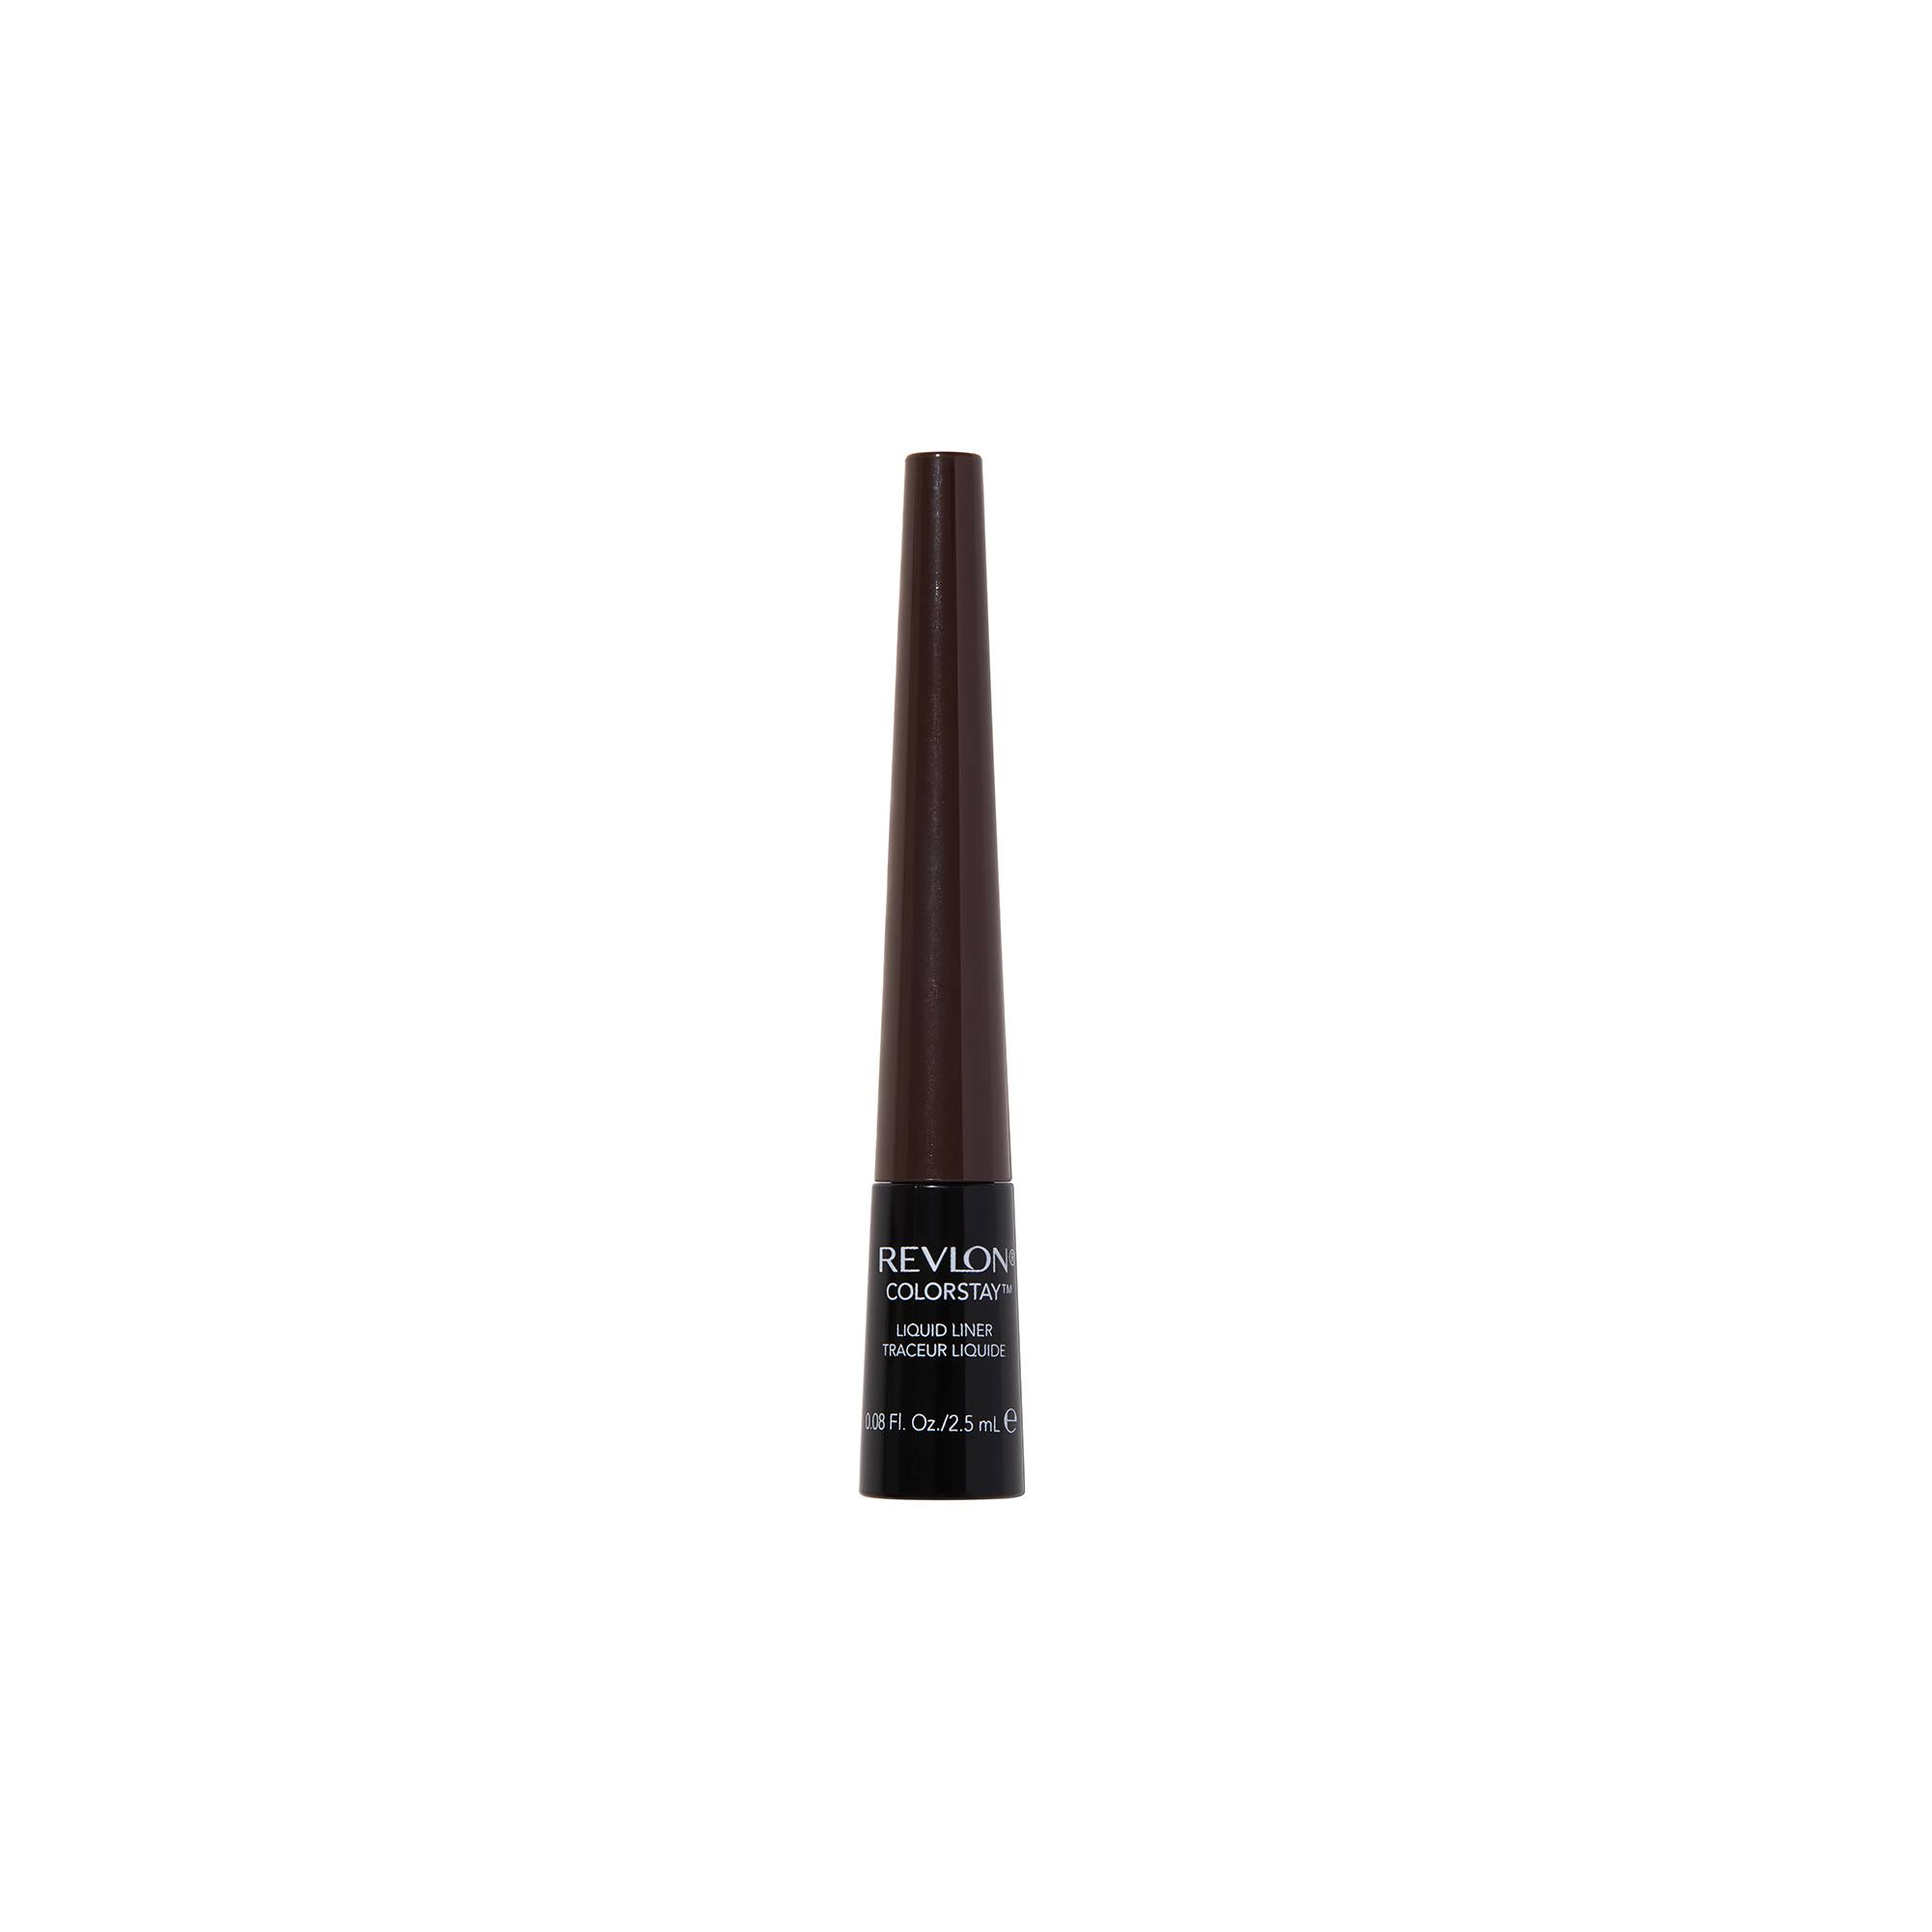 Revlon Colorstay Liquid Liner - 252 Black Brown, 2.5ml